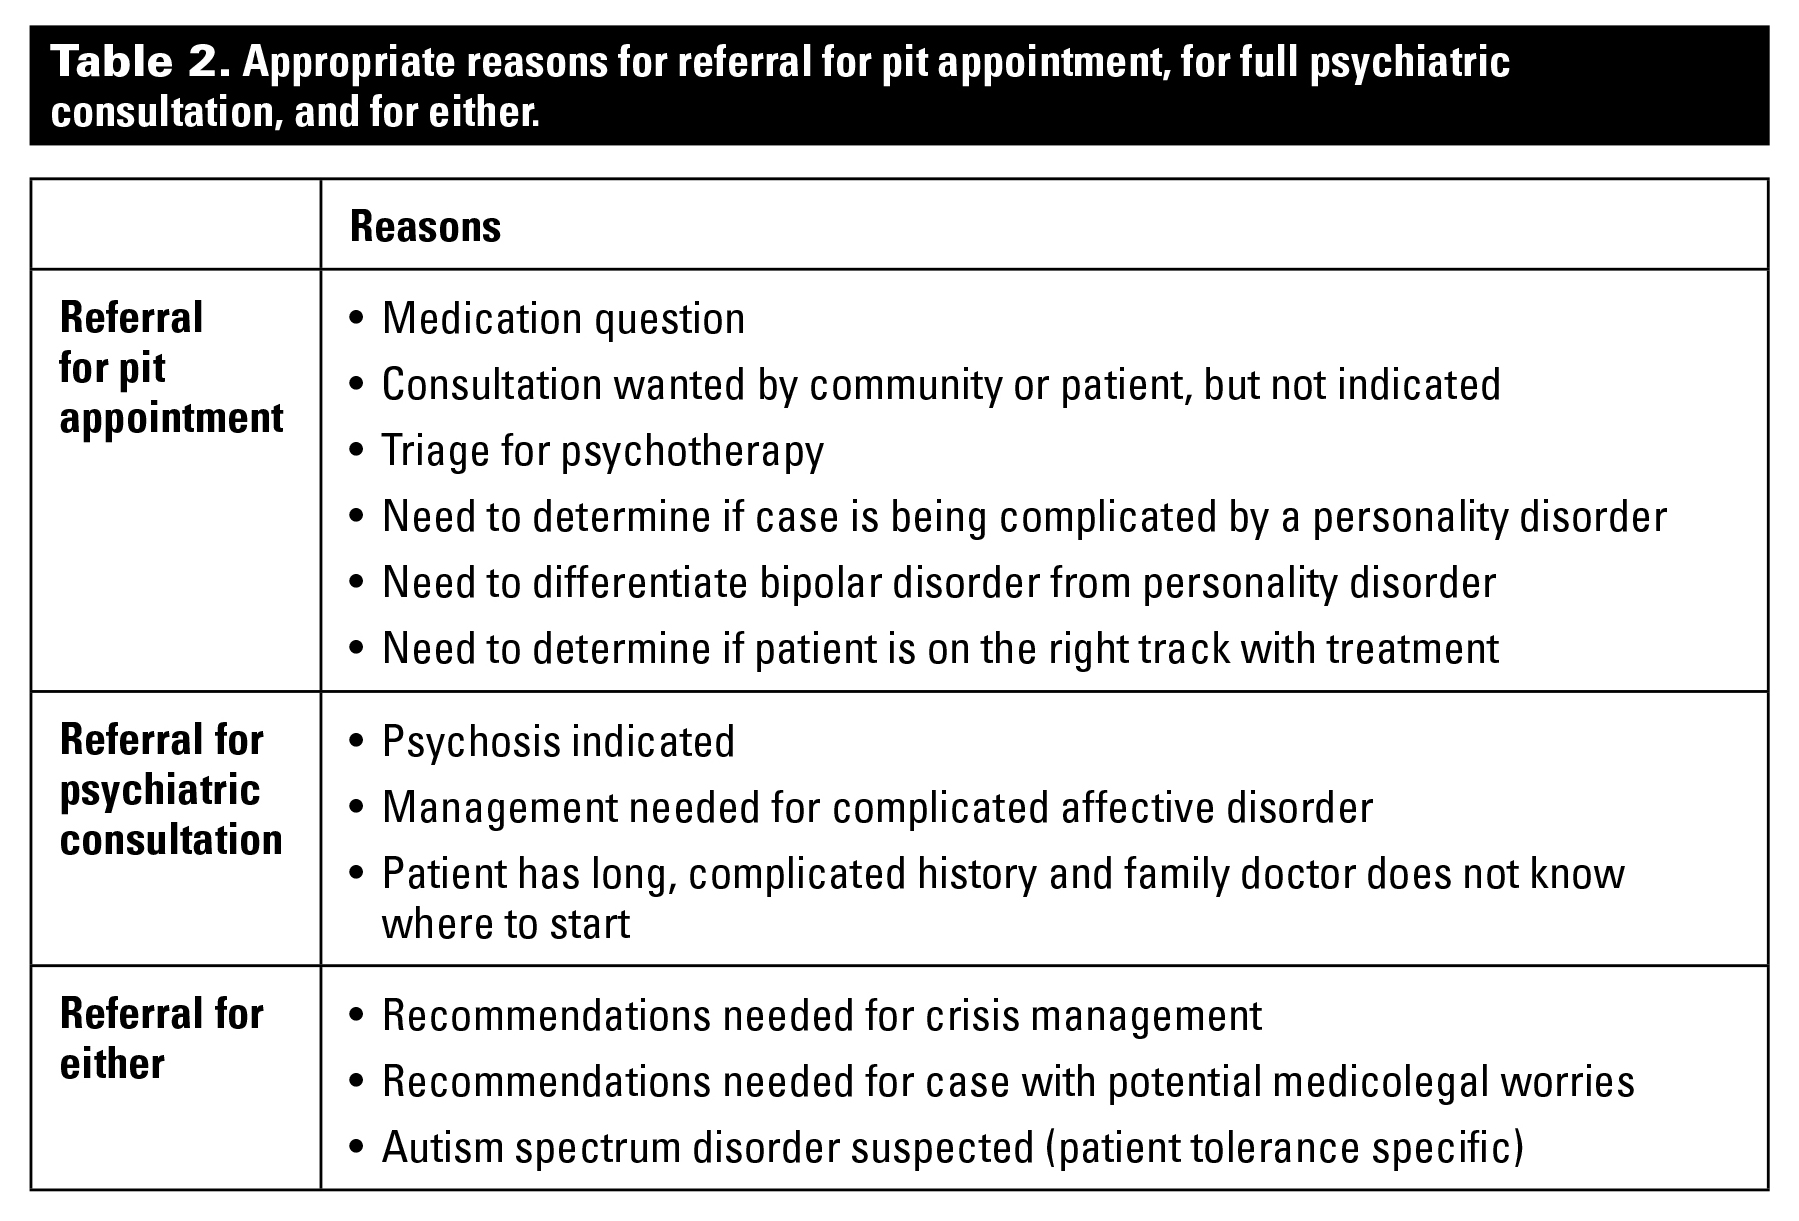 Assessment by pit appointment as an alternative to full psychiatric